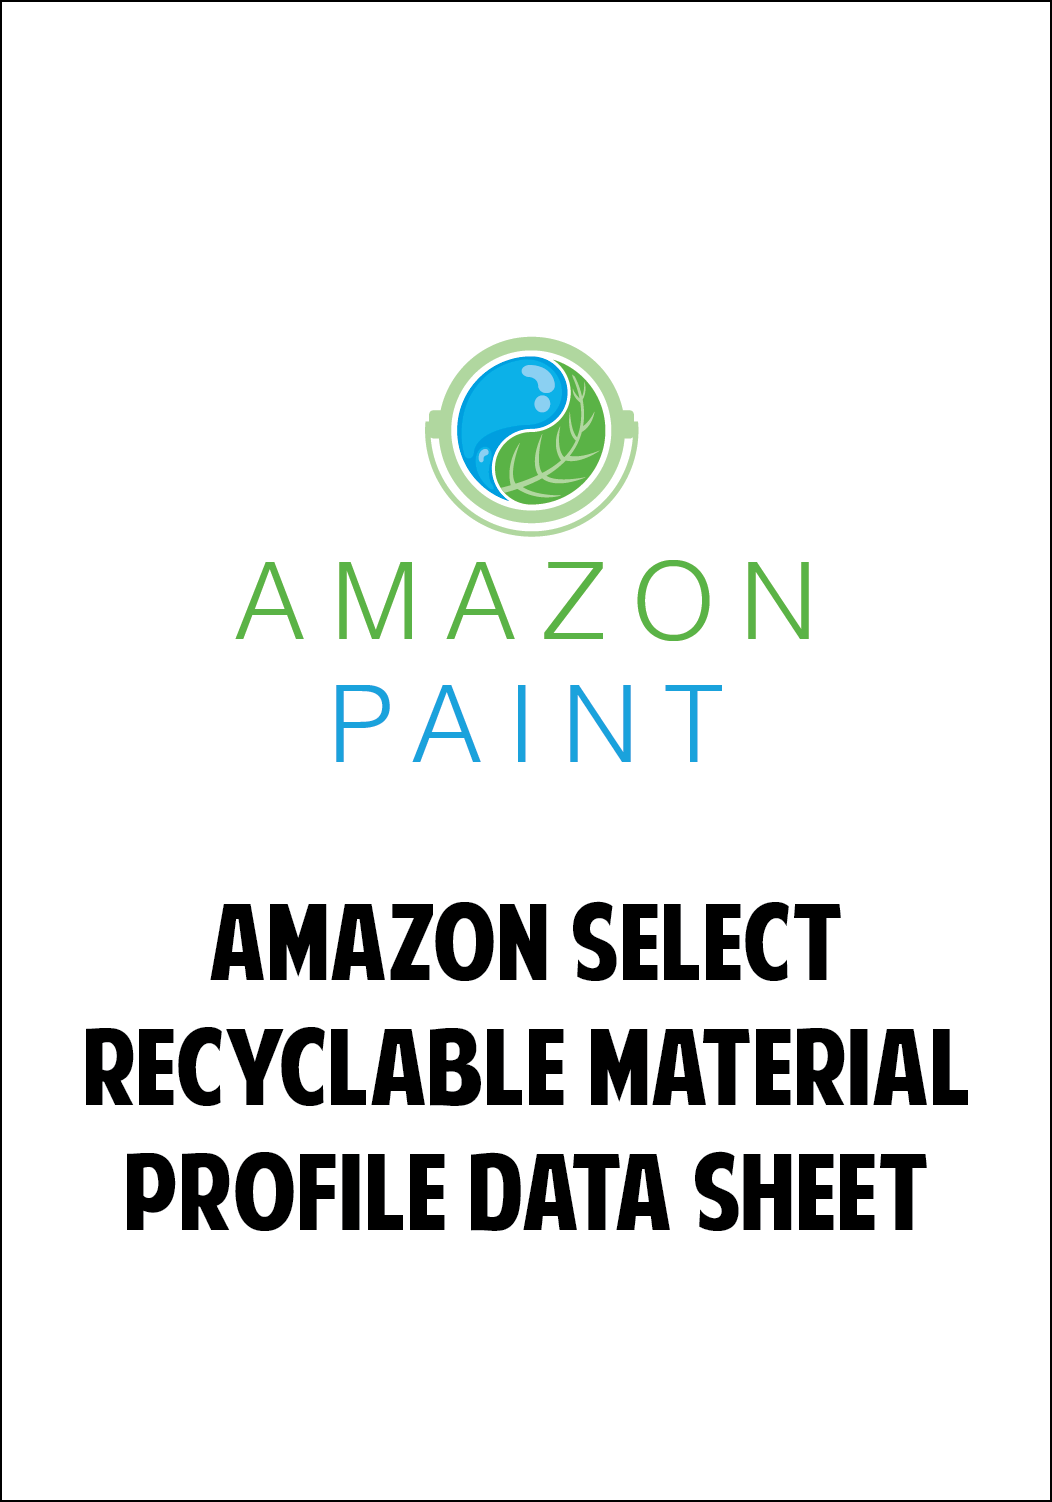 Amazon Select Recyclable Material Profile Data Sheet